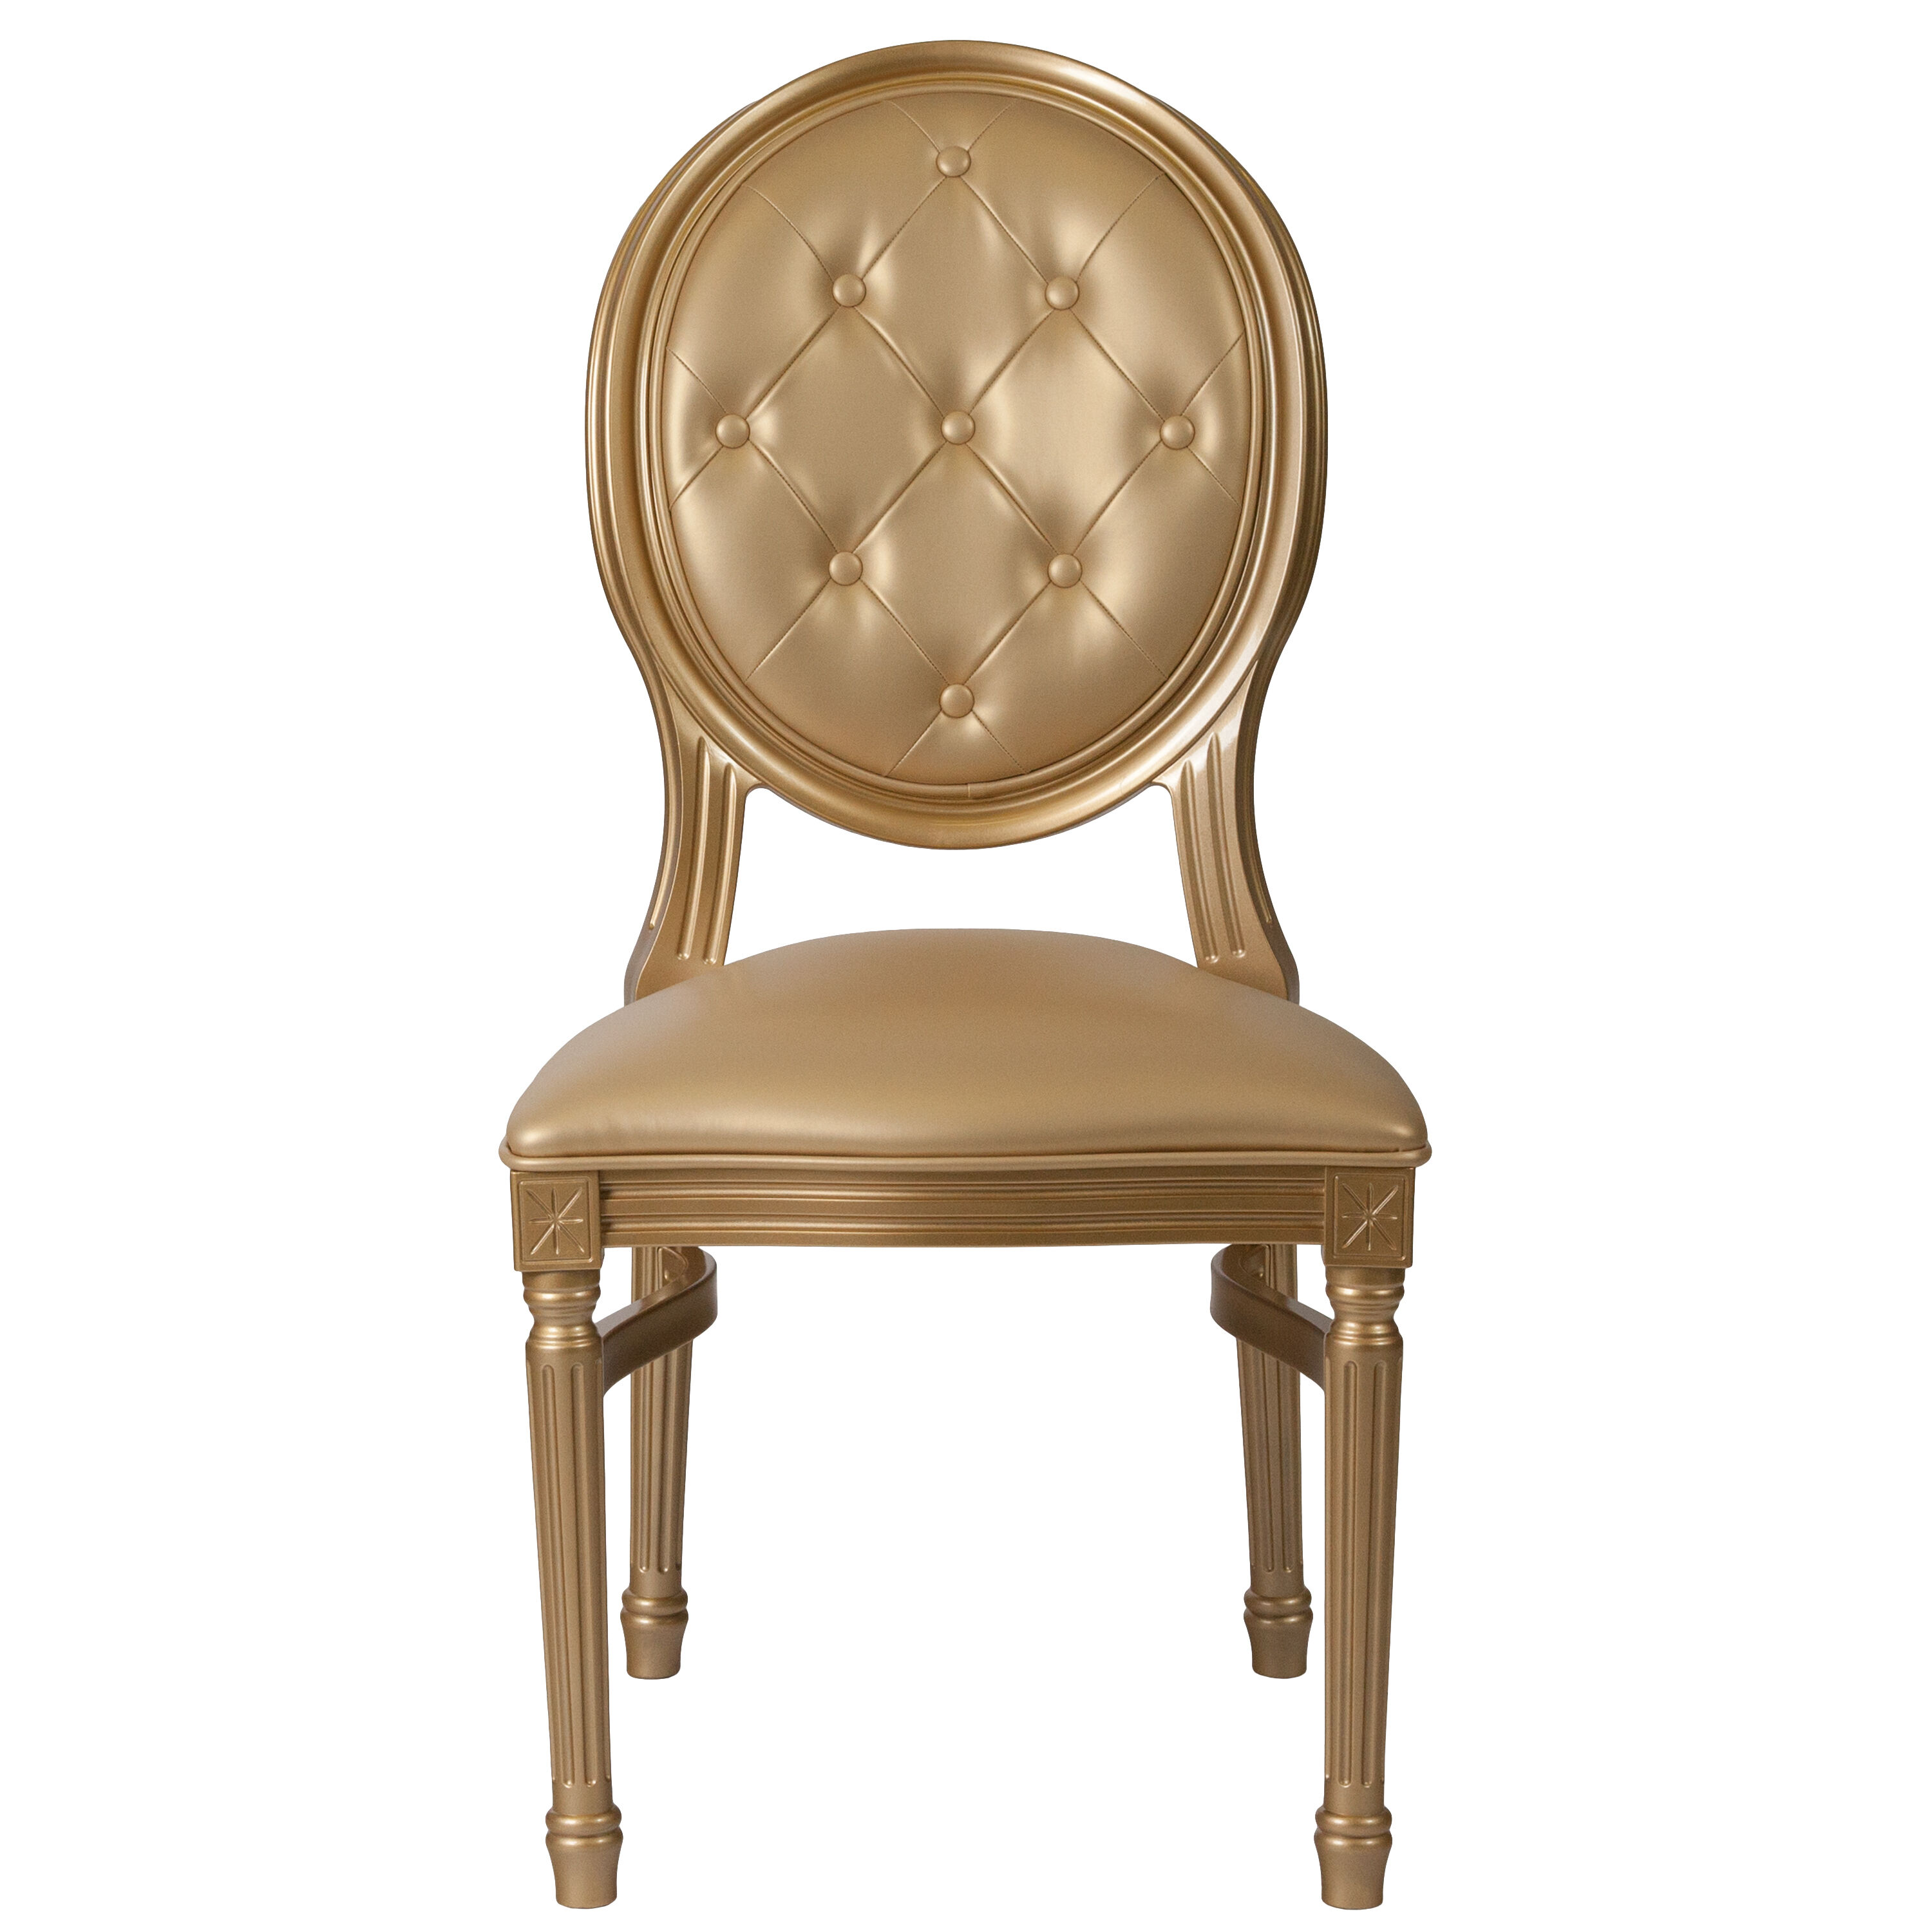 Capacity King Louis Chair With Tufted Back, Gold Vinyl